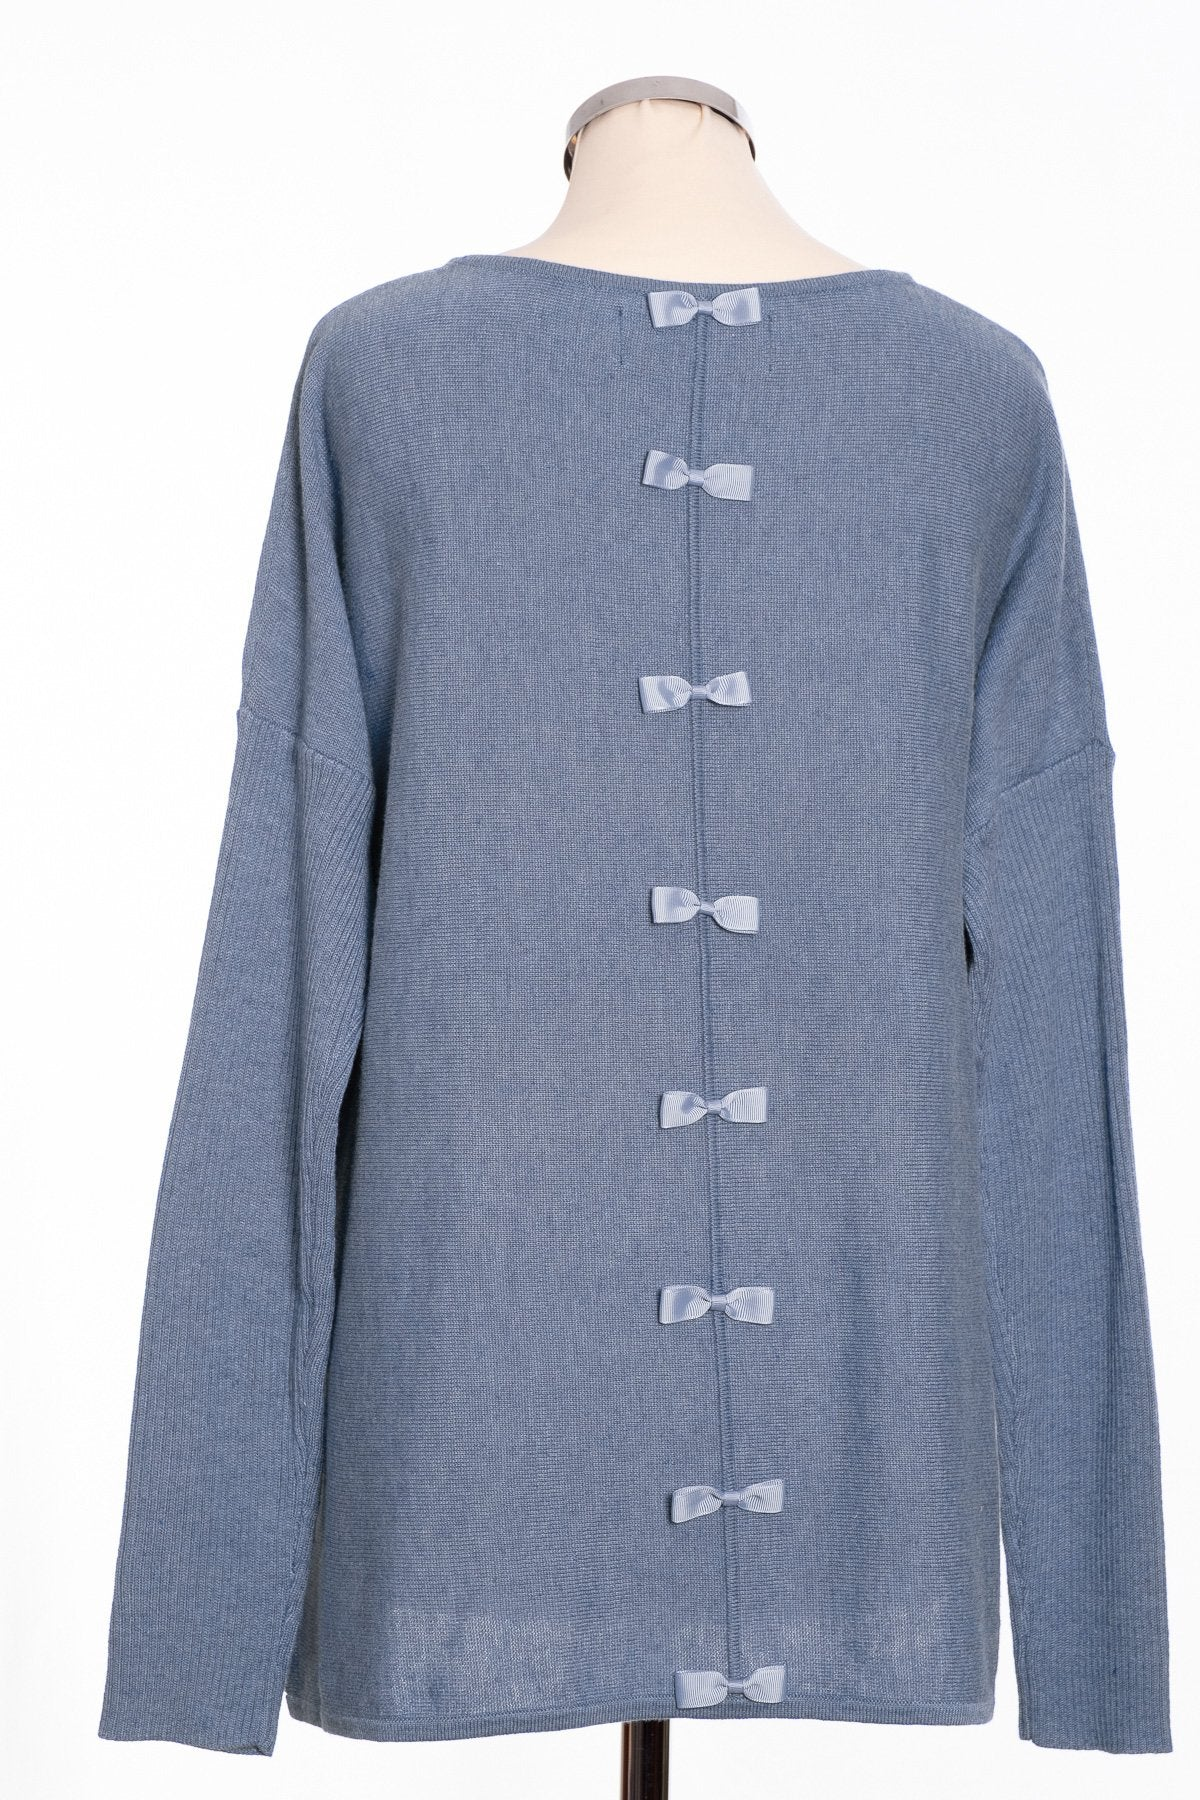 Bow back jumper, sky blue